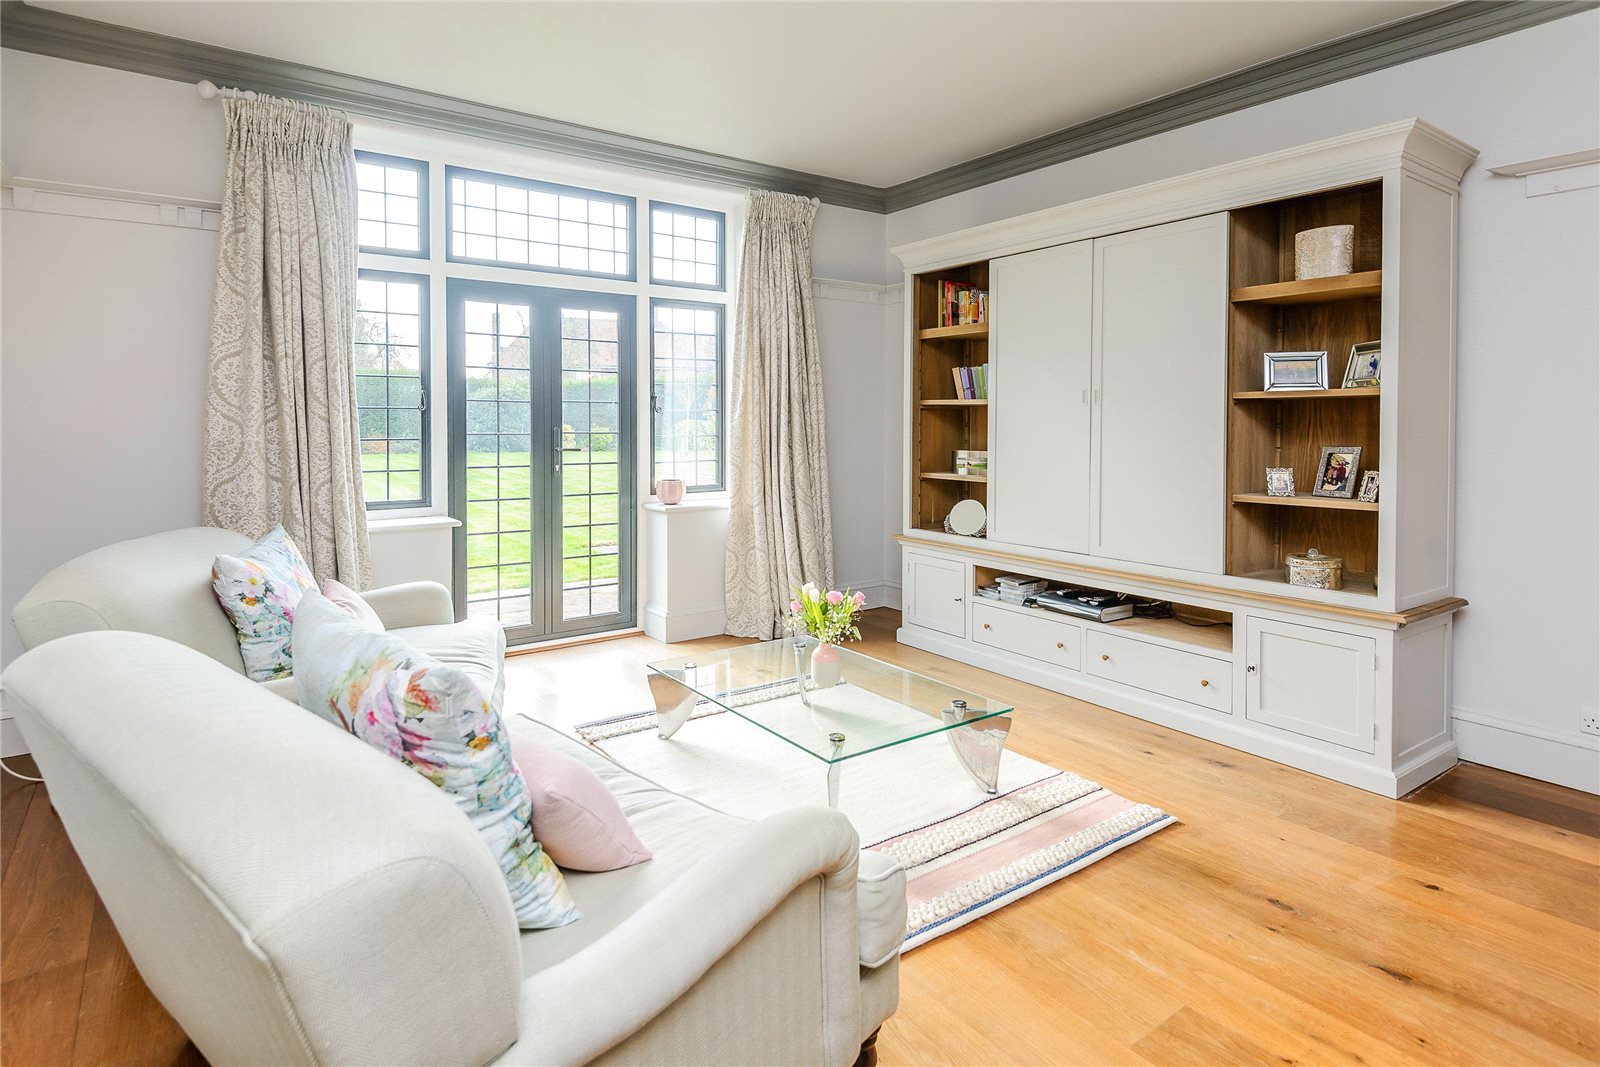 Additional photo for property listing at Packhorse Road, Gerrards Cross, Buckinghamshire, SL9 Gerrards Cross, England